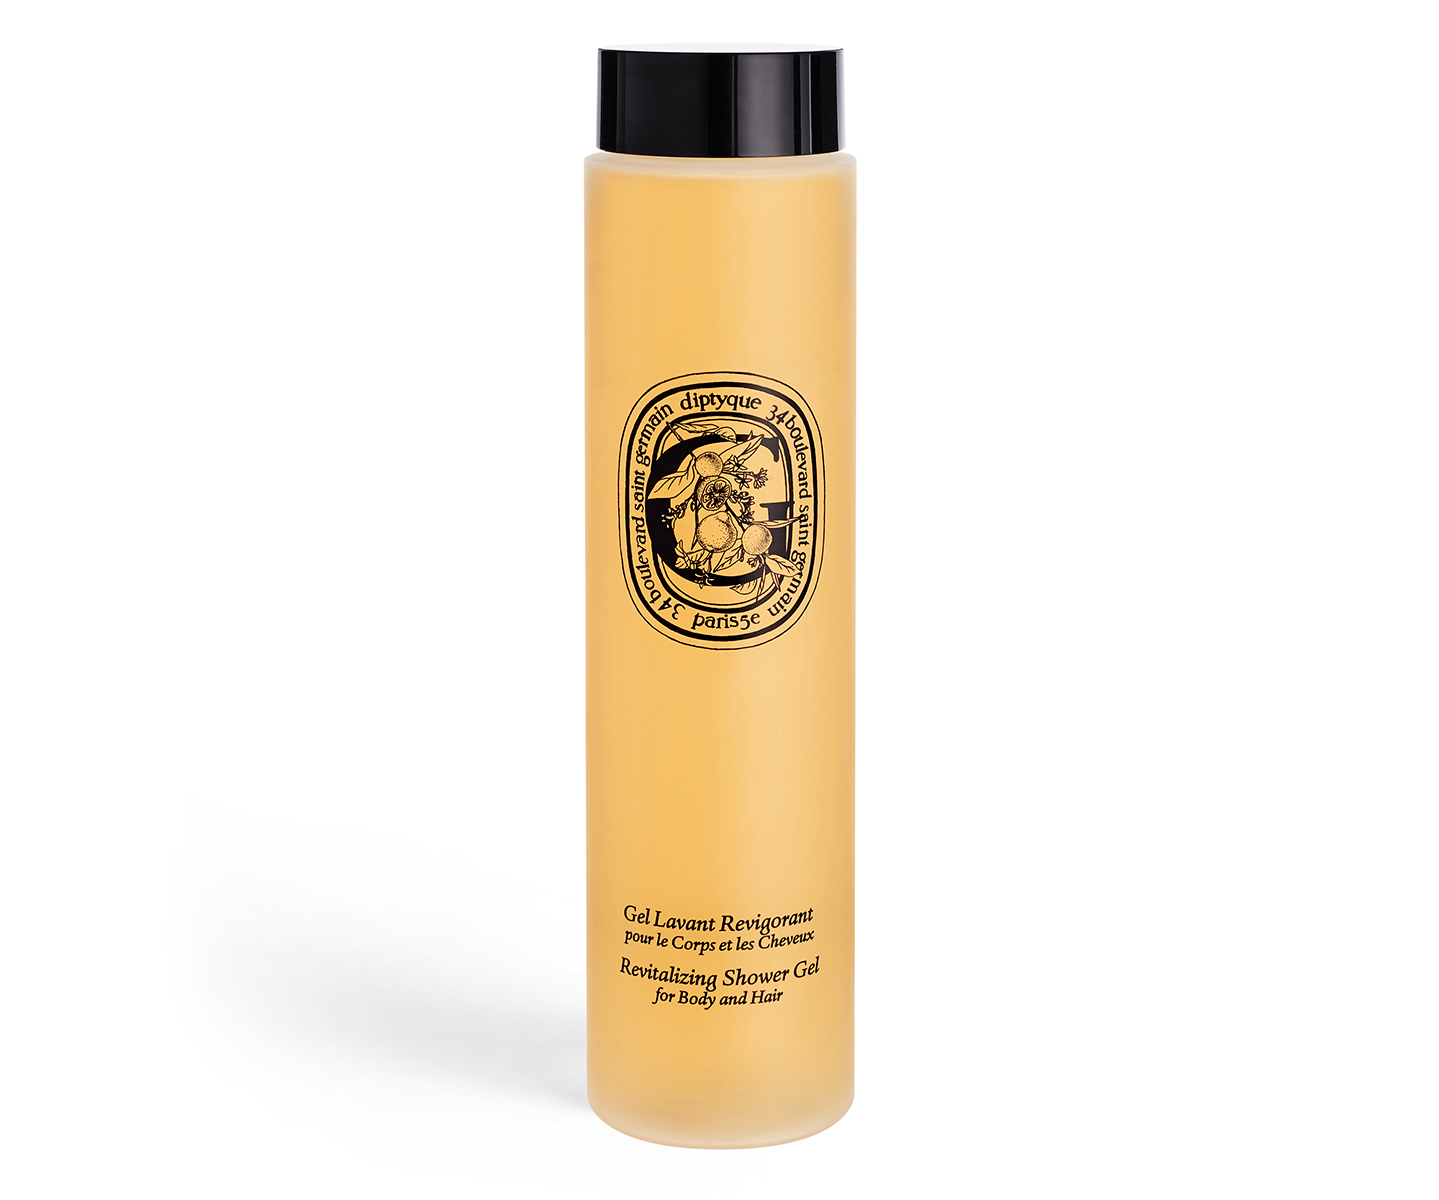 The Art of Body Care Revitalizing Shower Gel by Diptyque, one of the best French shower gels.